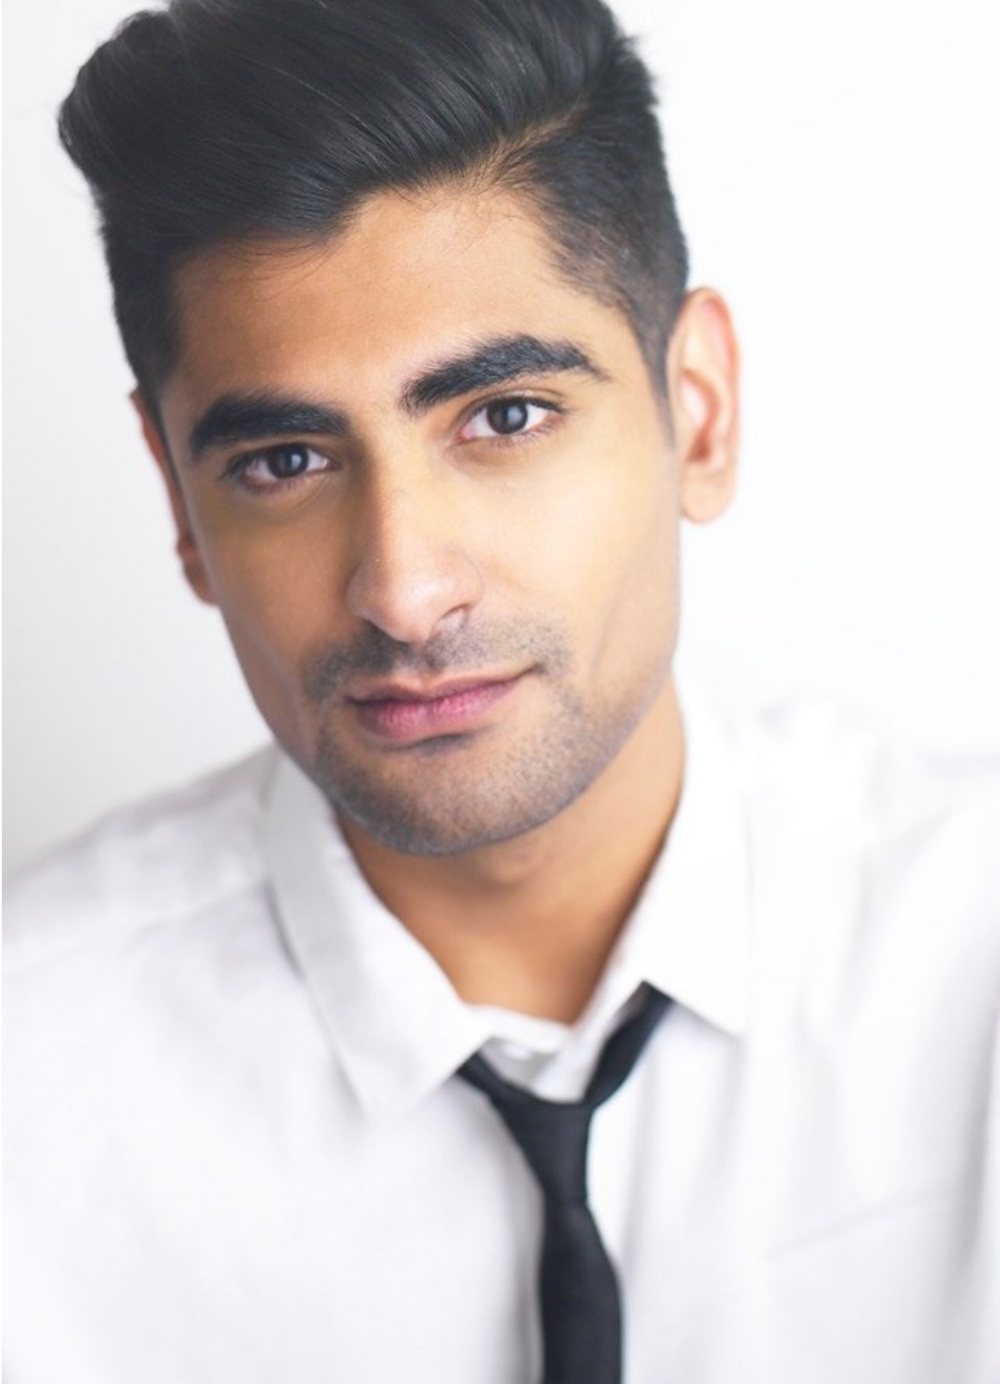 VARDAAN ARORA - This guy is starting to make some real fans. Congrats to client Vardaan Arora for his booking on the hit NBC drama series, BLINDSPOT.